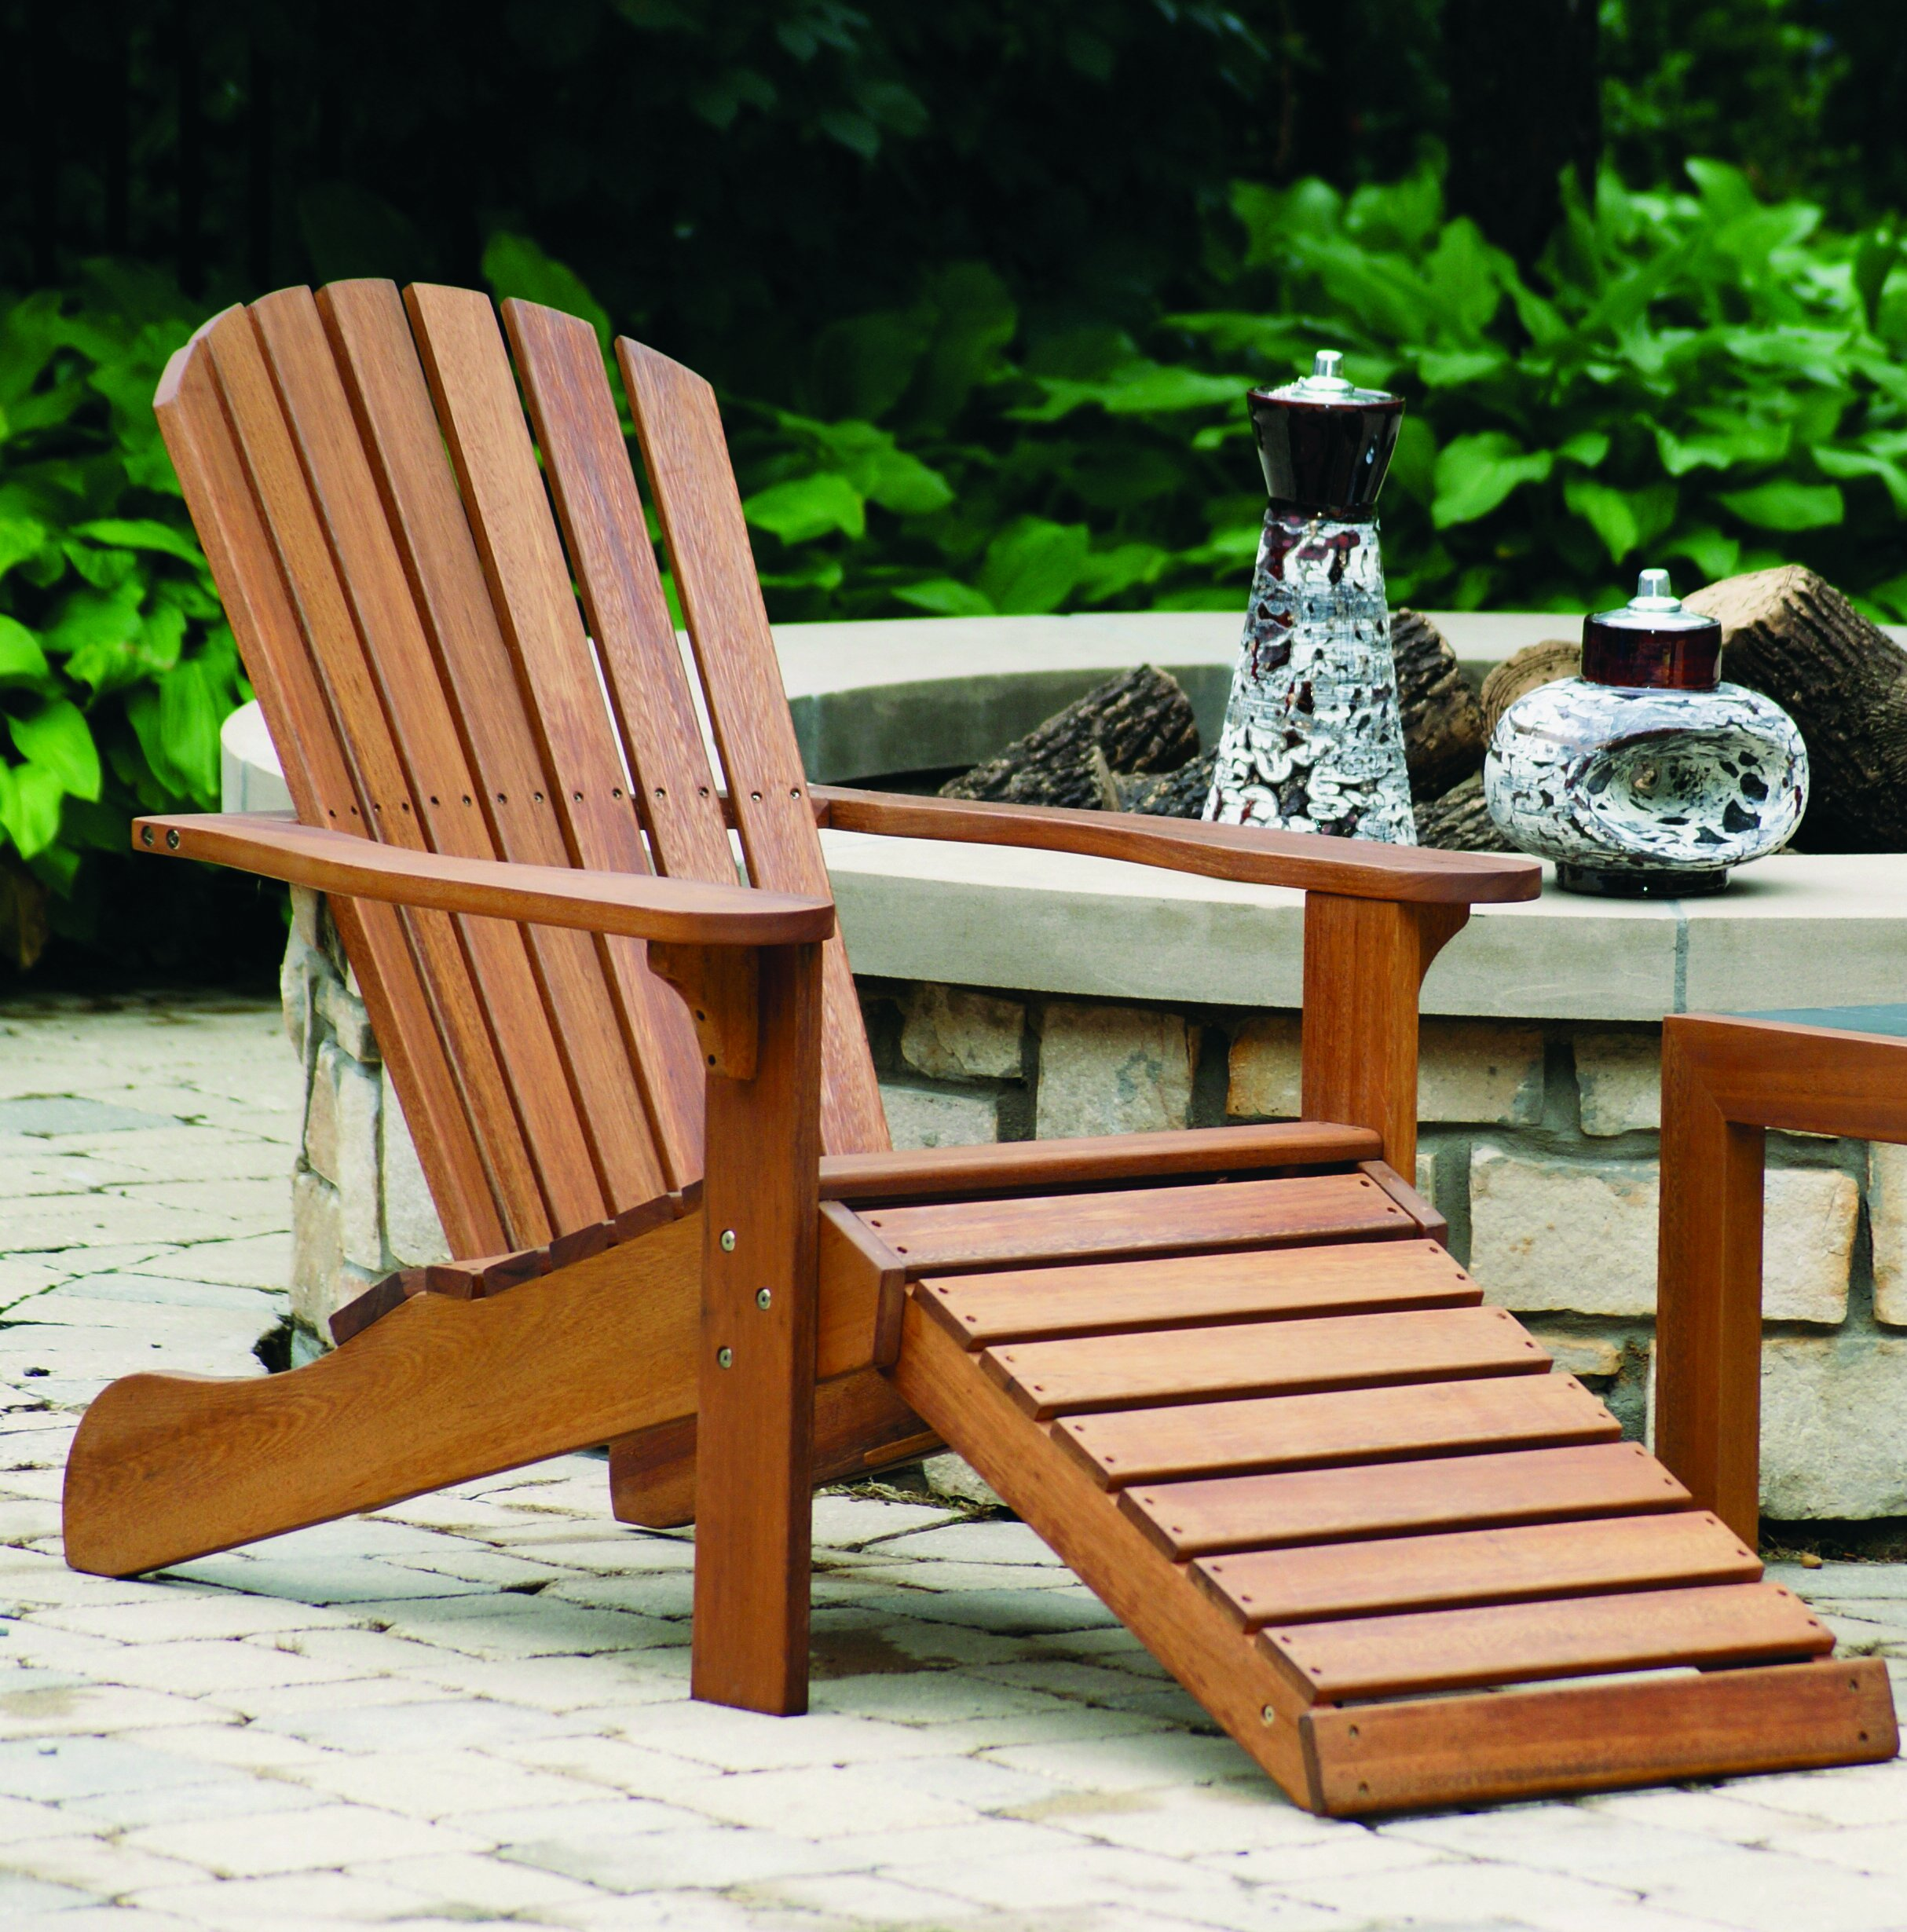 Outdoor Interiors CD3111 Eucalyptus Adirondack Chair and Built In Ottoman by Outdoor Interiors (Image #3)